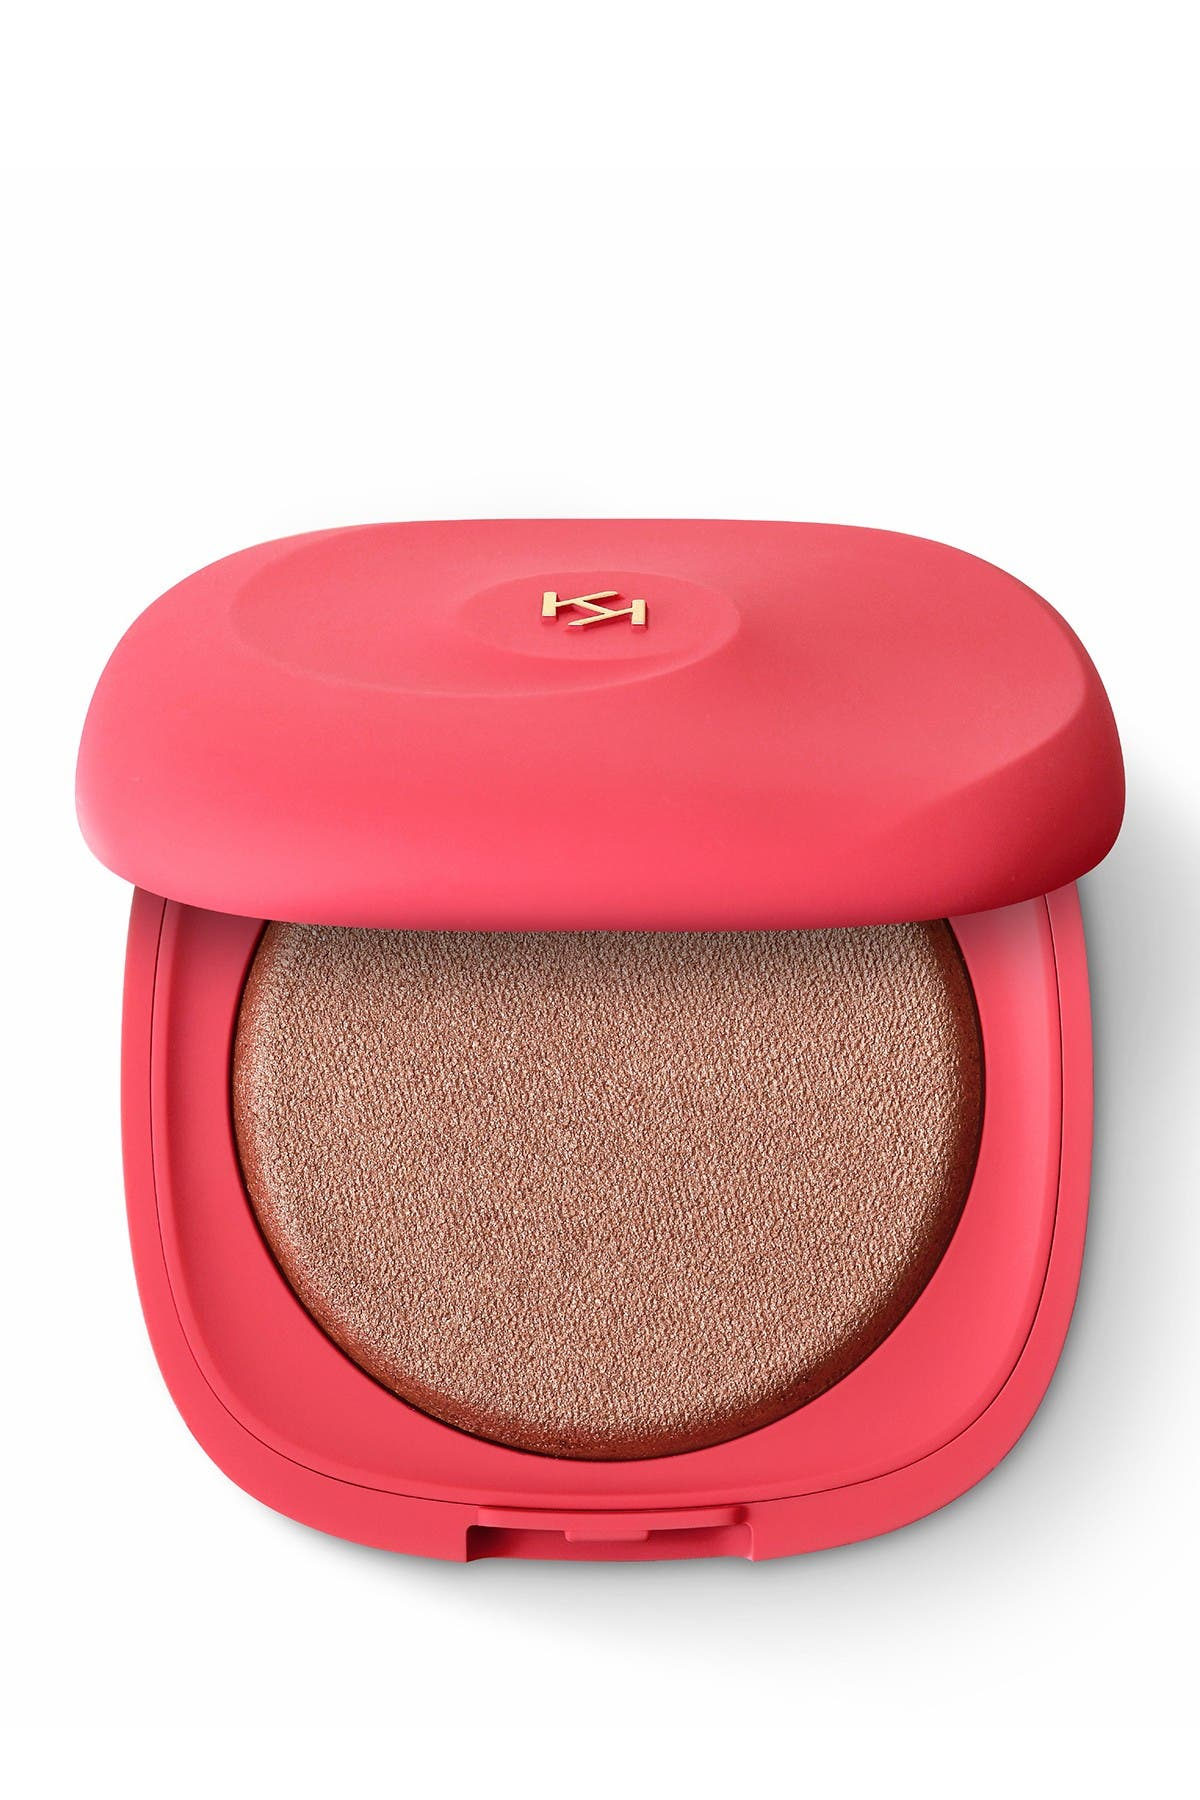 Image of Kiko Milano Mood Boost Radiant Blush - 01 Cappuccino Cake